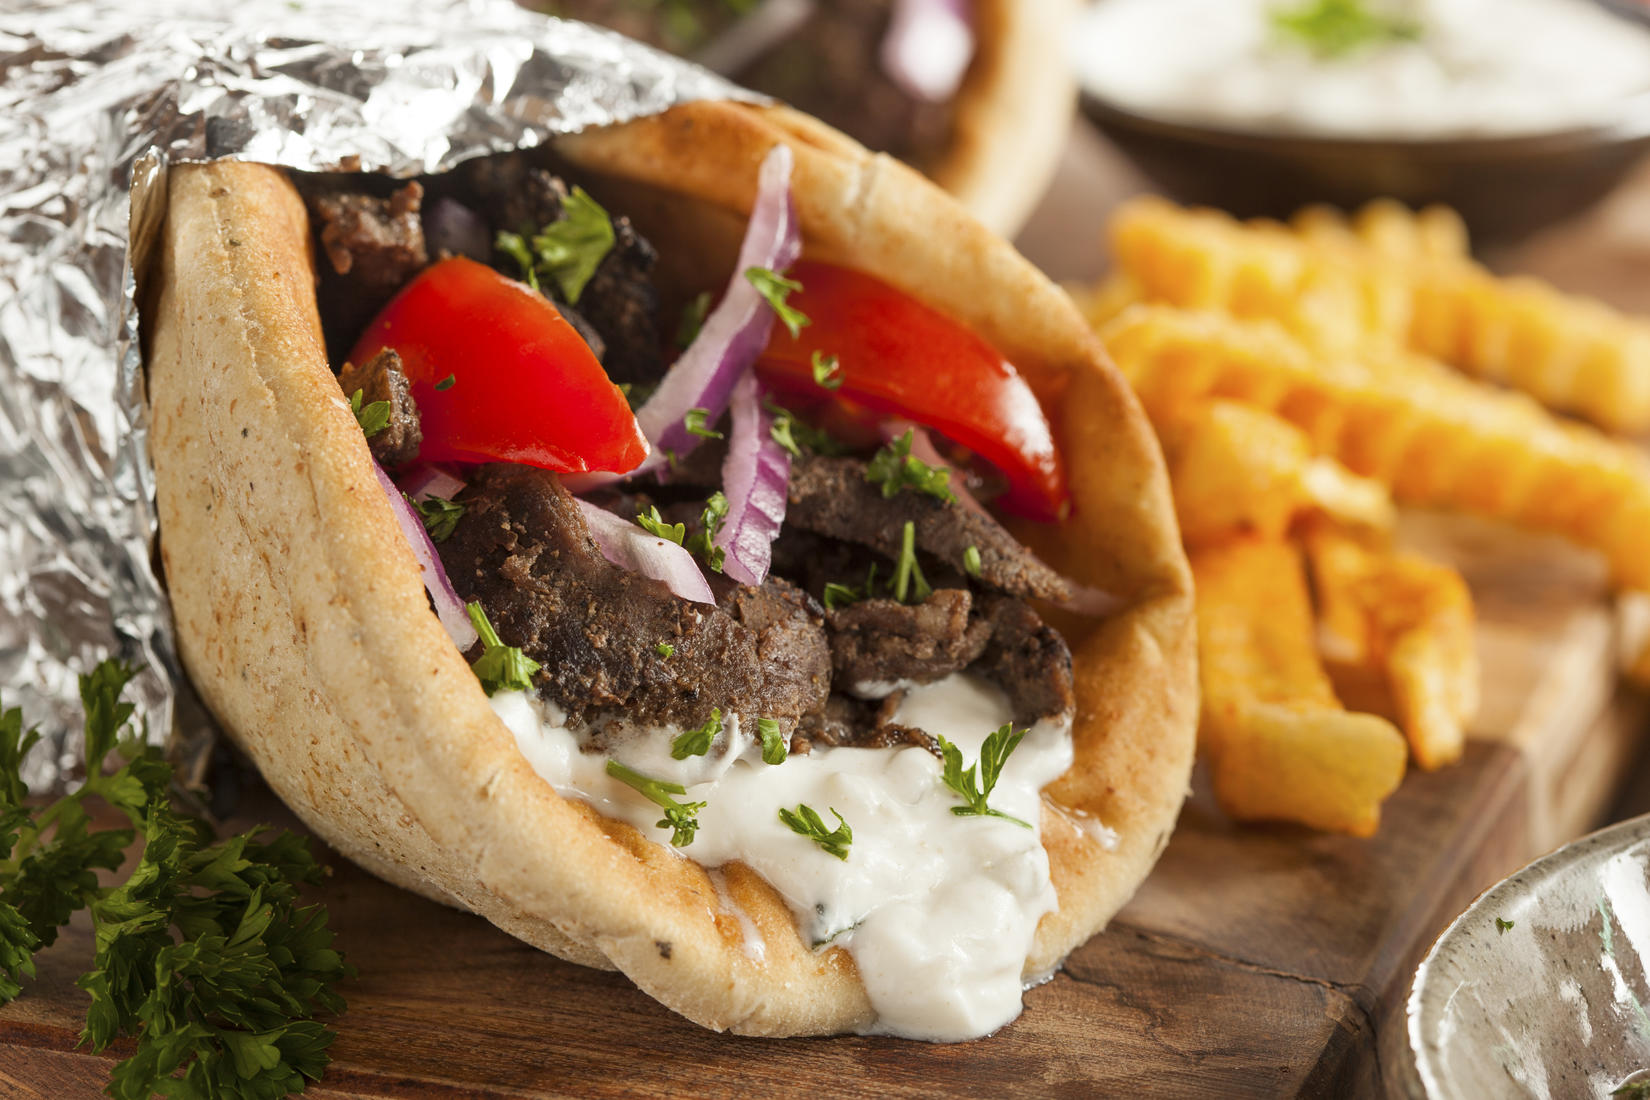 Mediterranean Restaurants Coupons Deals Near Gig Harbor Wa